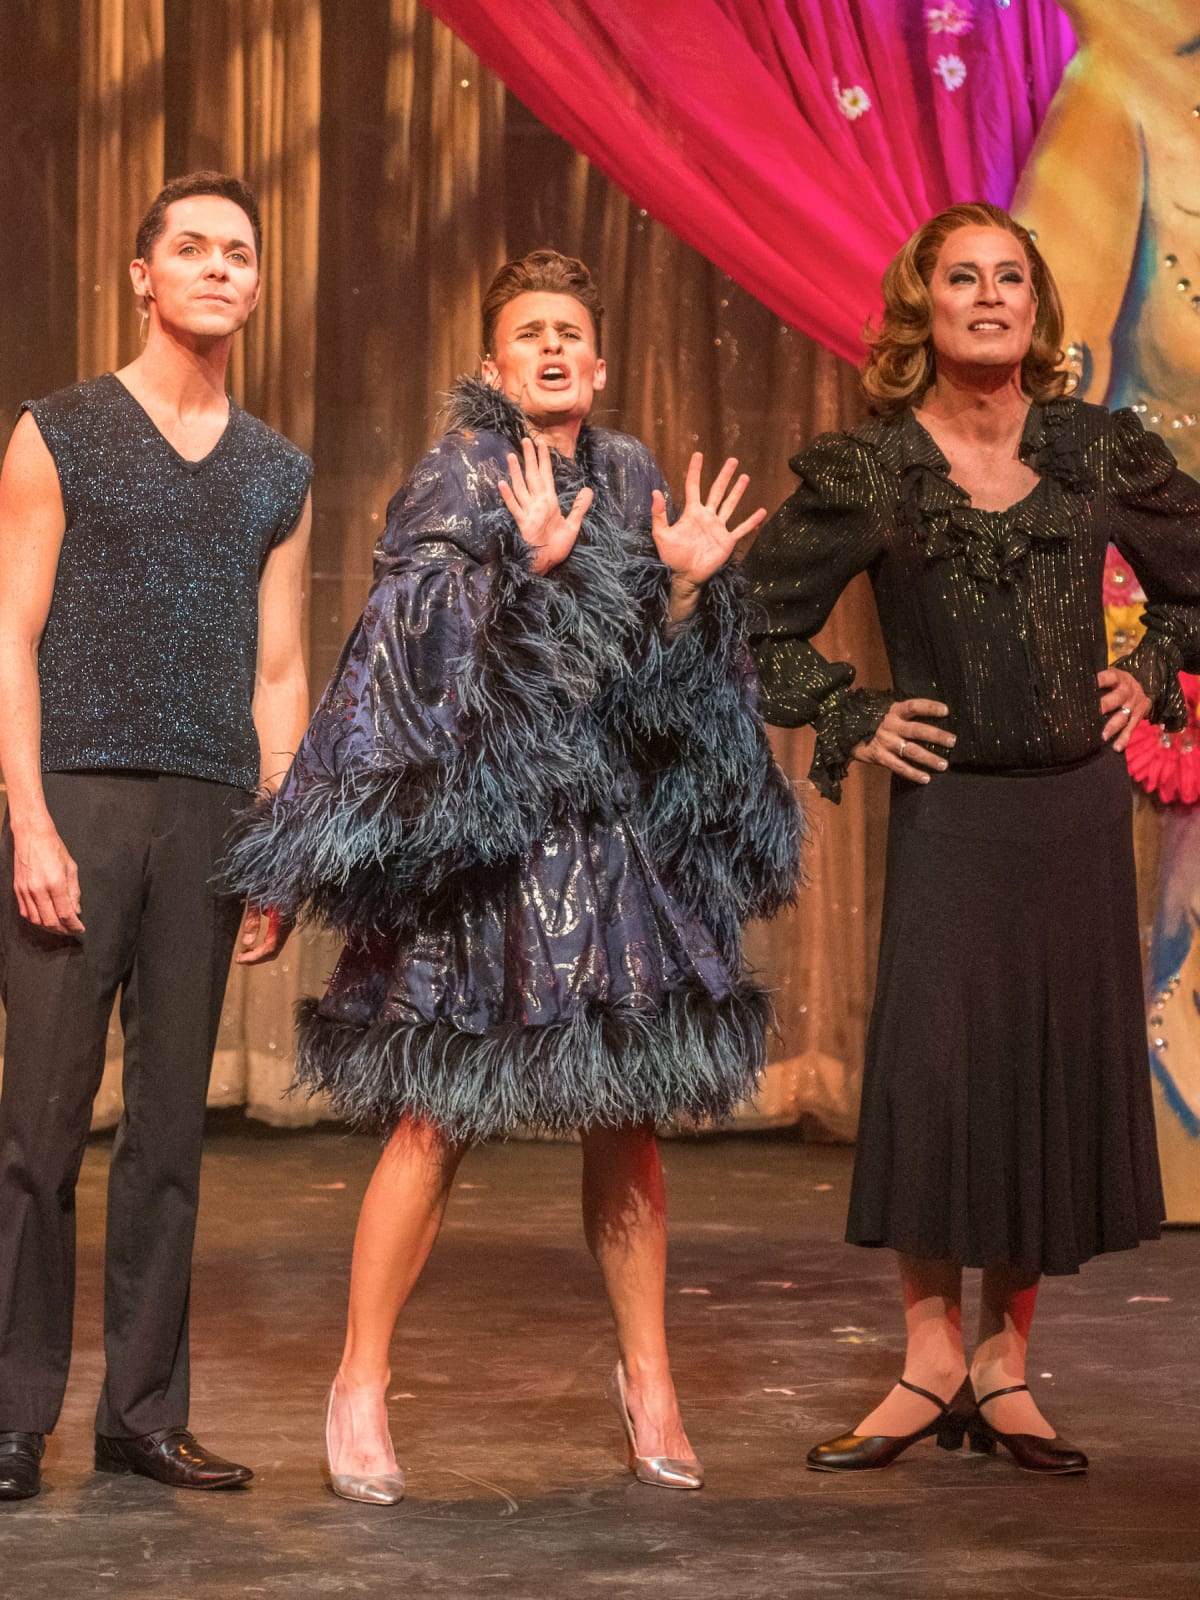 Priscilla Queen of the Desert at Uptown Players